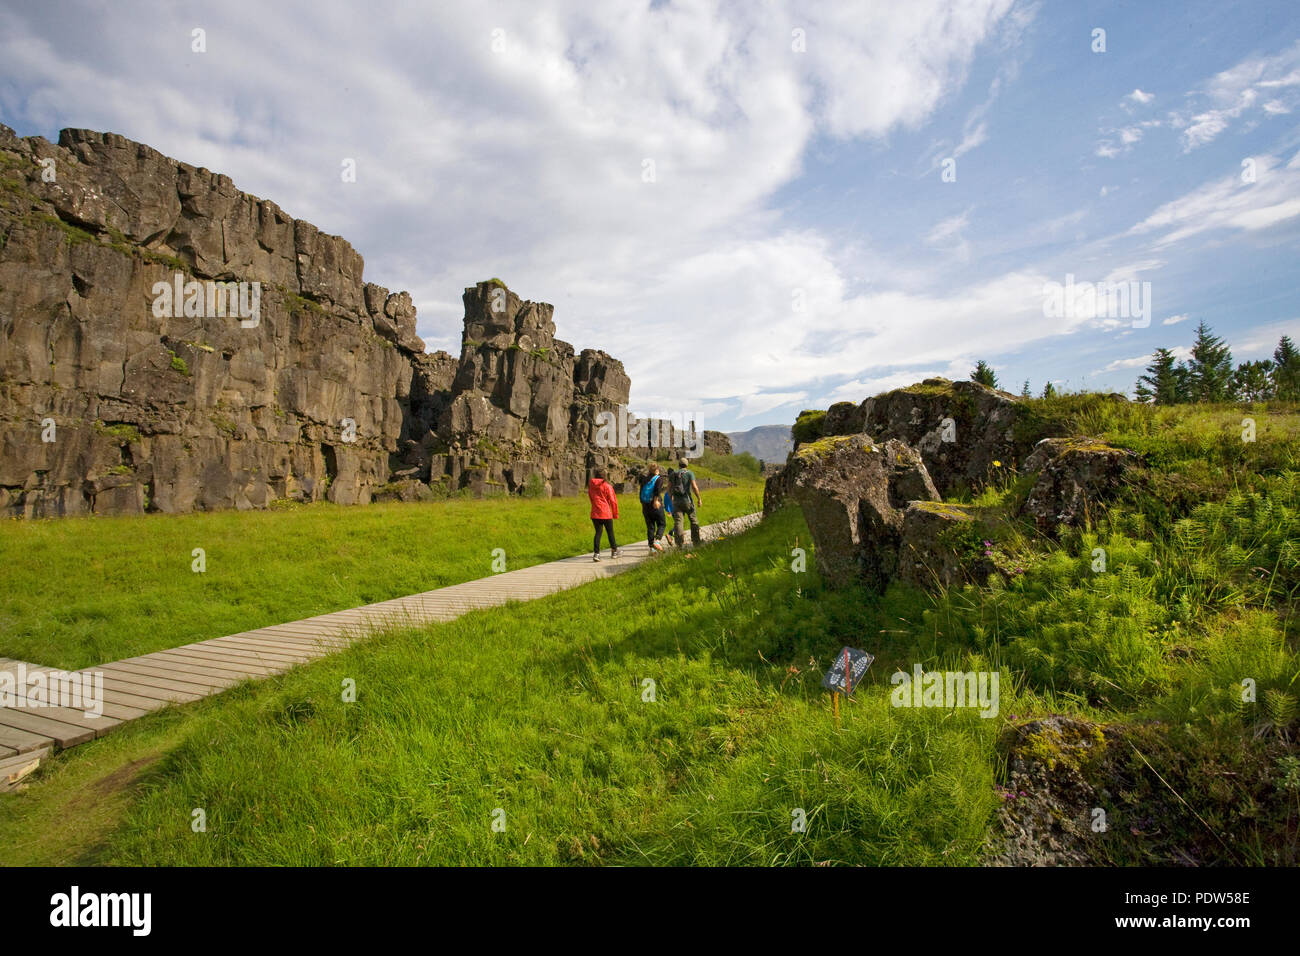 Hikers wander the famous Almannagja Gorge, in Thingvellir National Park, in south Iceland. - Stock Image